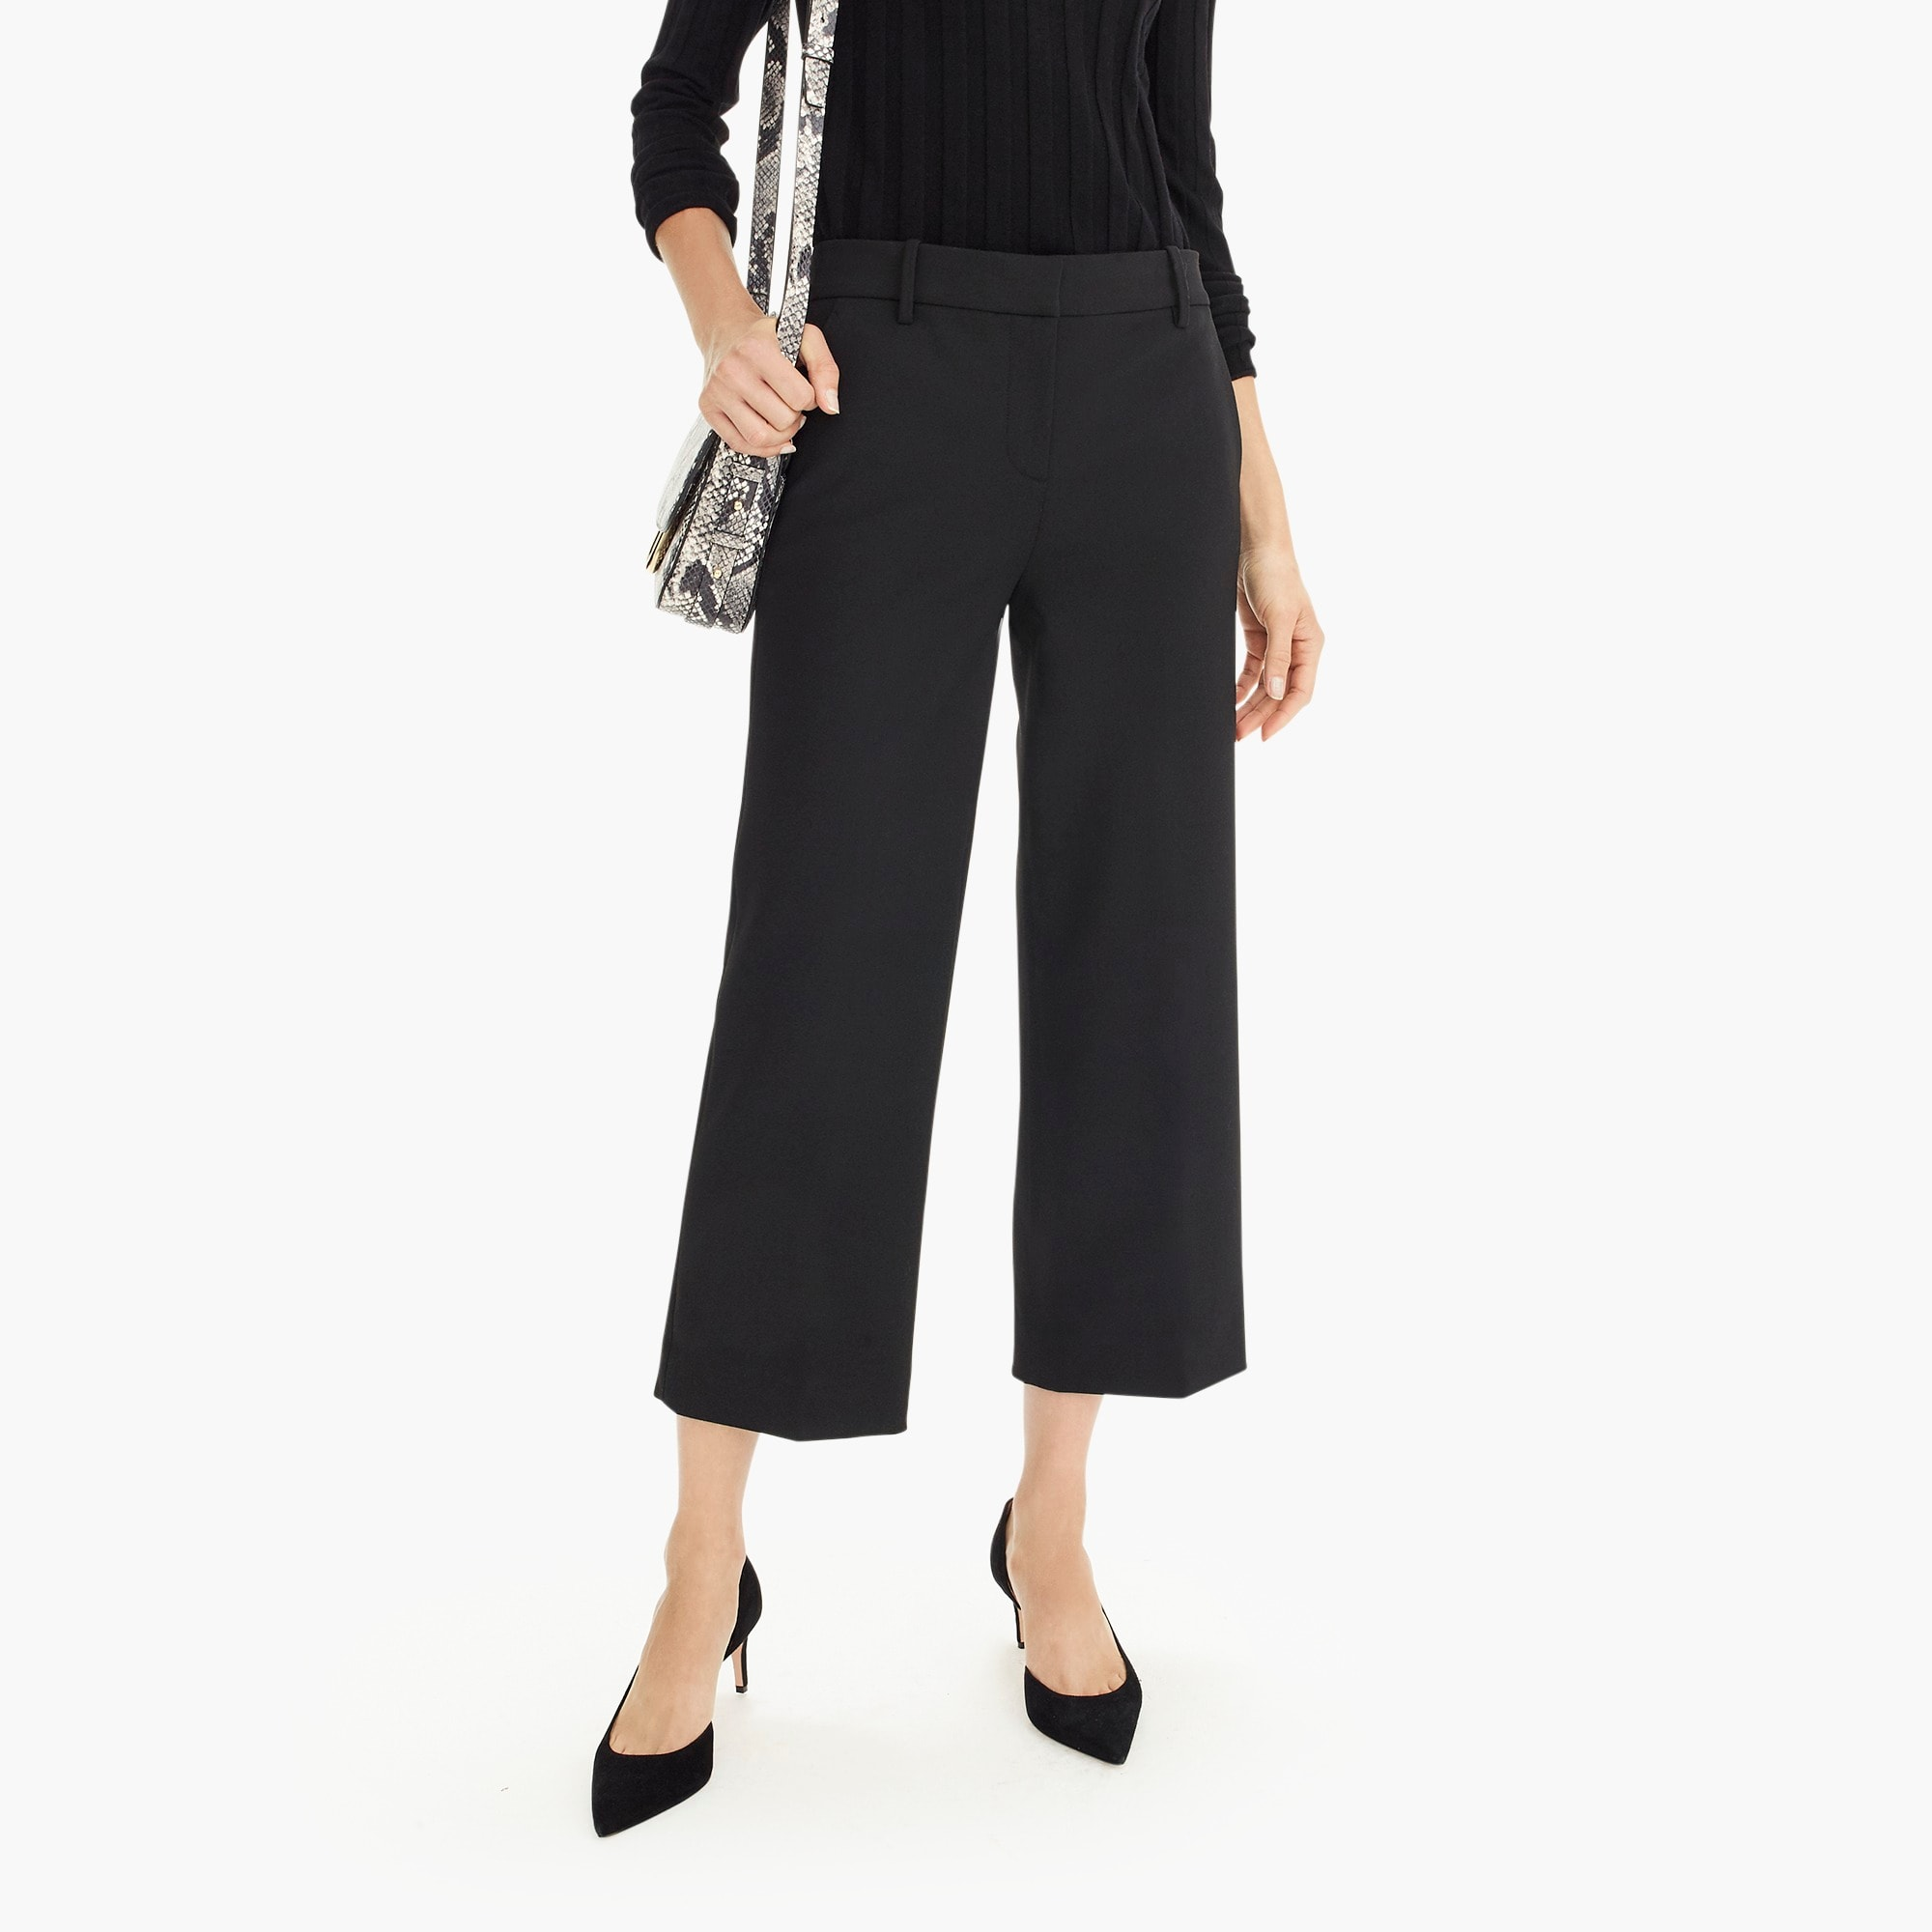 Petite High-rise Peyton wide-leg pant in four-season stretch